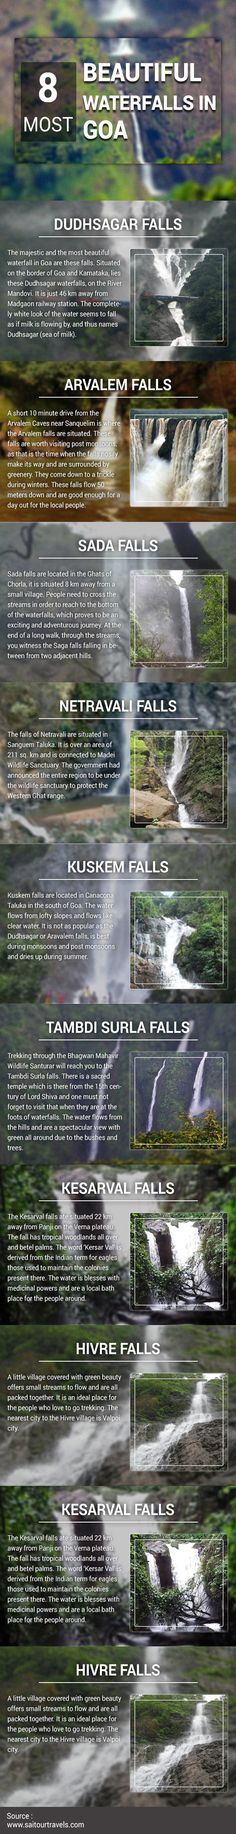 Check out the Latest #Infogarphic about most beautiful #Waterfalls in #Goa. Created by Sai Tour & Travels. Visit: http://goo.gl/ZkFgvz #Tour #Travel #Tourism #India #Chandigarh #Mohali #Panchkula #Taxiservice #Touroperator